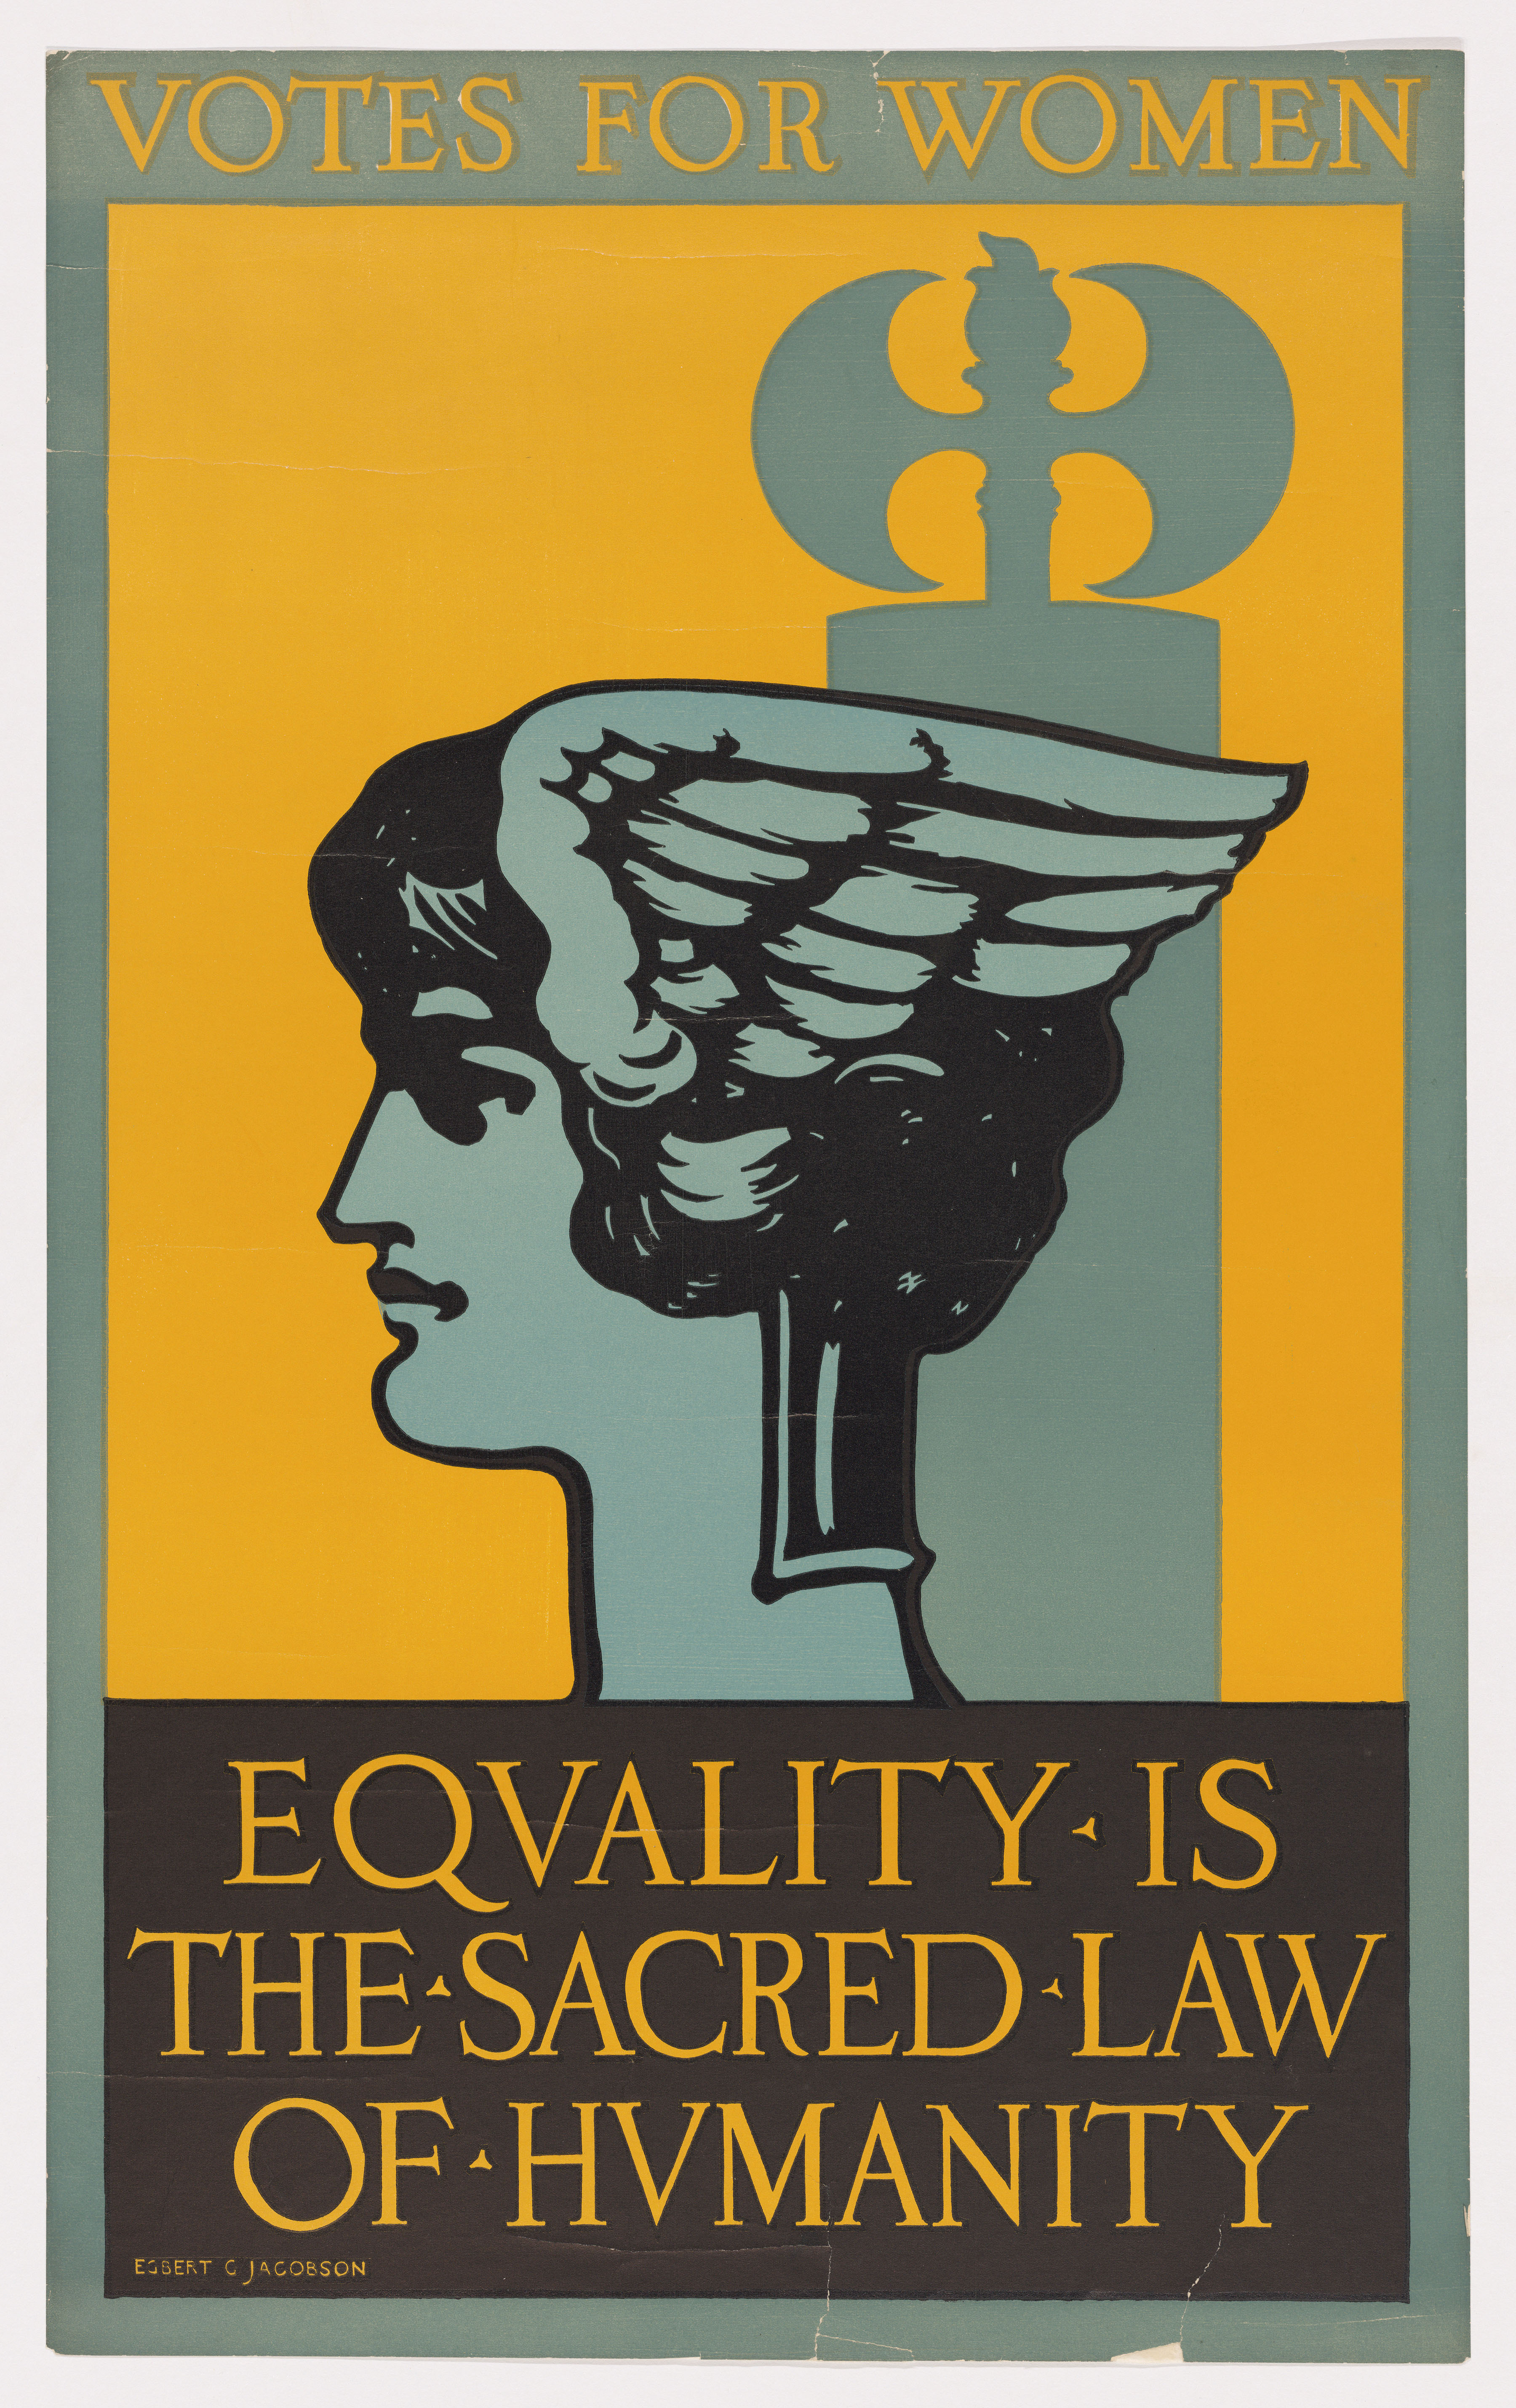 Votes for Women Equality is the Sacred Law of Humanity